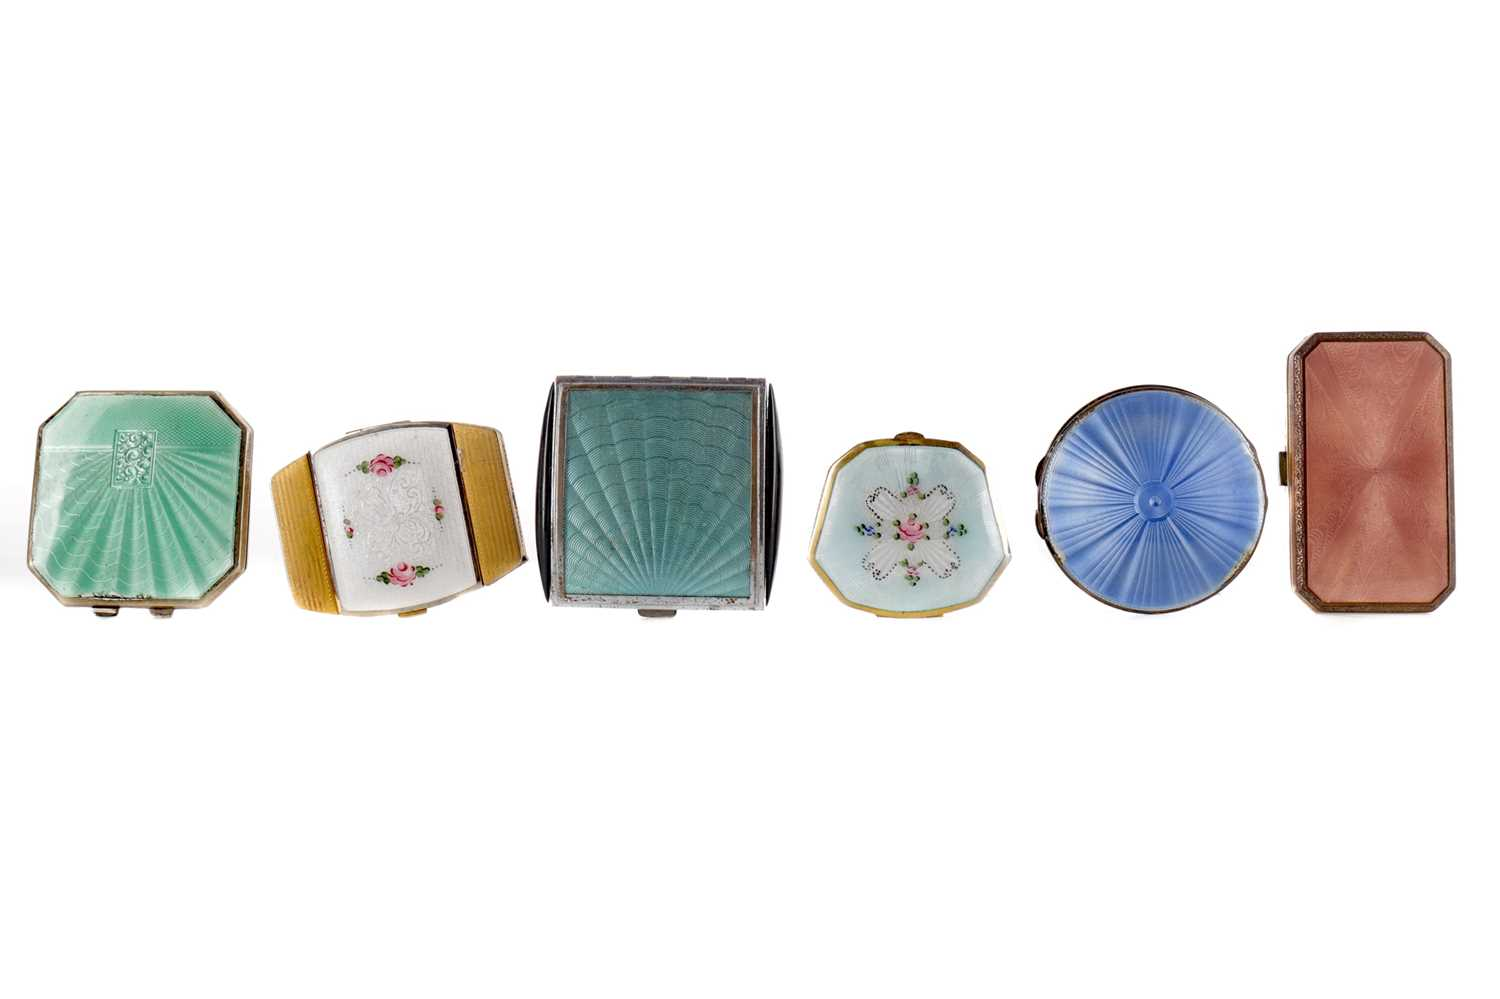 Lot 1717 - A LOT OF SIX COMPACTS INCLUDING A SILVER SQUARE COMPACT